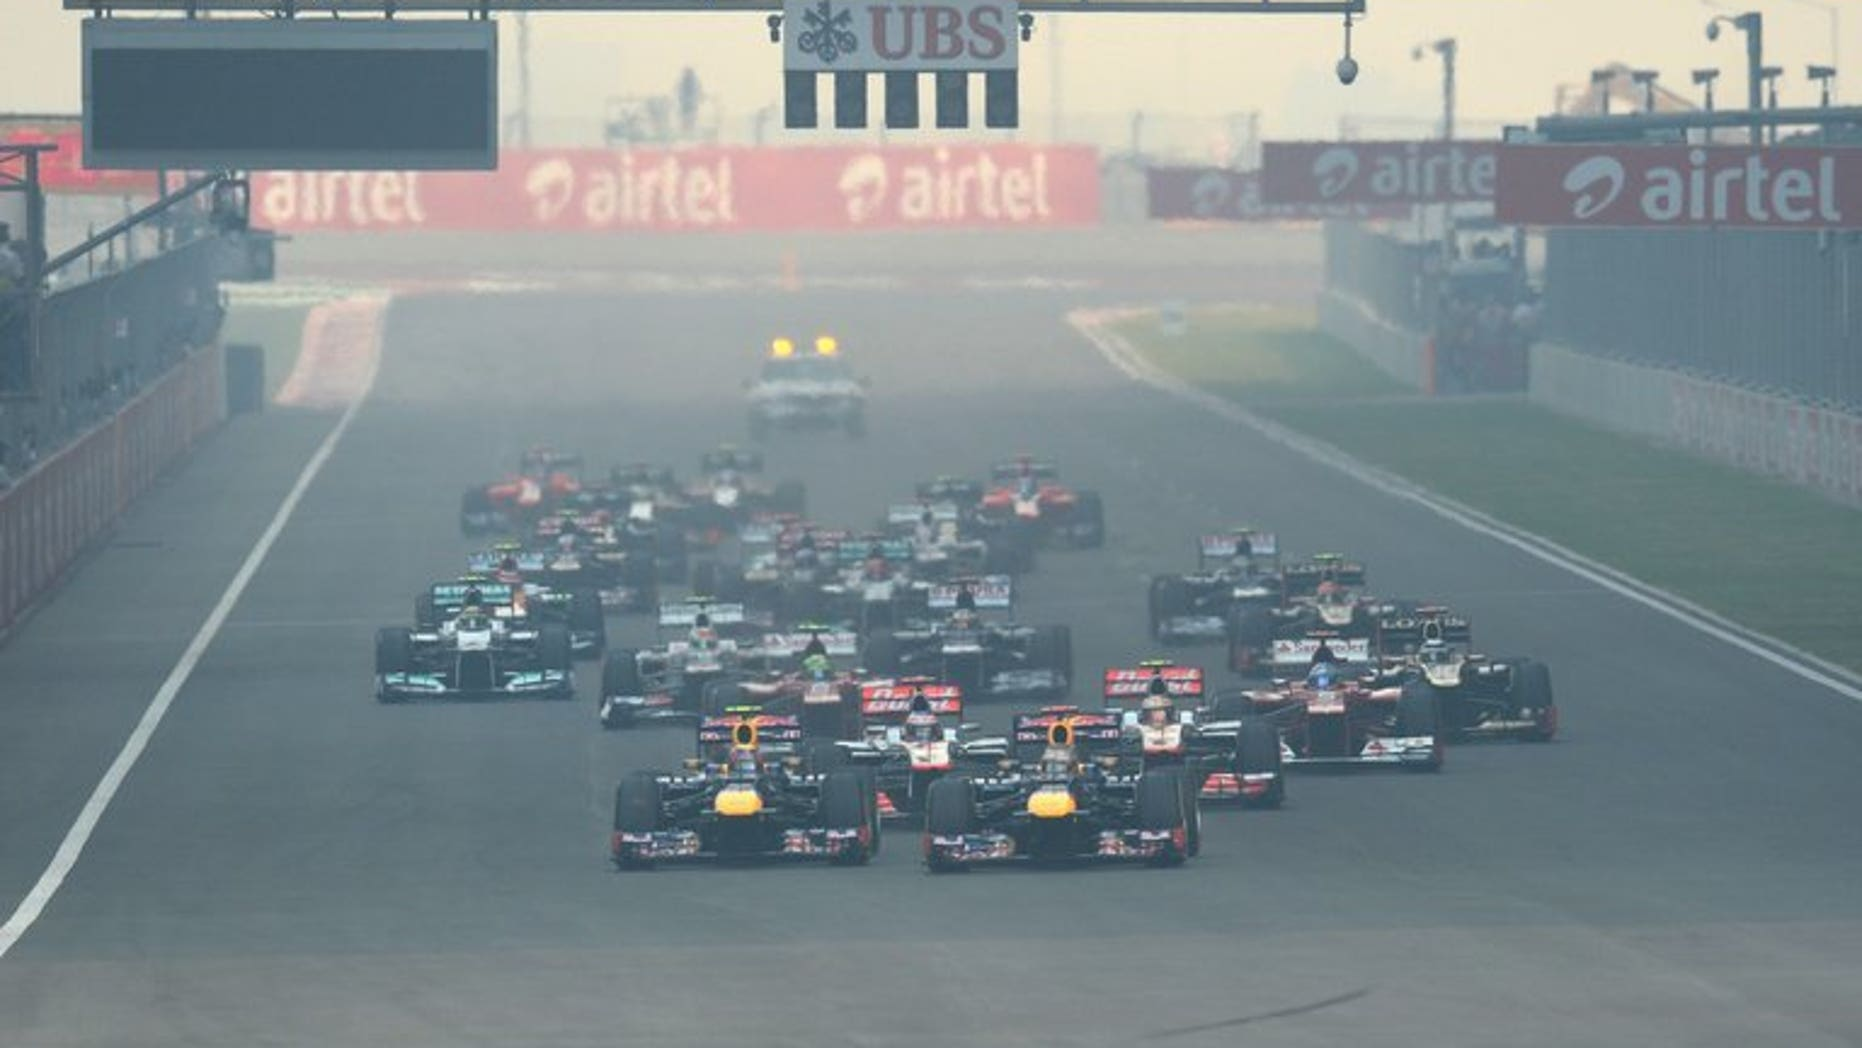 Drivers leave the starting grid at the start of the Formula One Indian Grand Prix in Greater Noida, on the outskirts of New Delhi on October 28, 2012. Political and financial issues could threaten next year's Indian and South Korean grand prix, as Formula One paymaster Bernie Ecclestone looks to add new races in the United States, Russia and Austria.